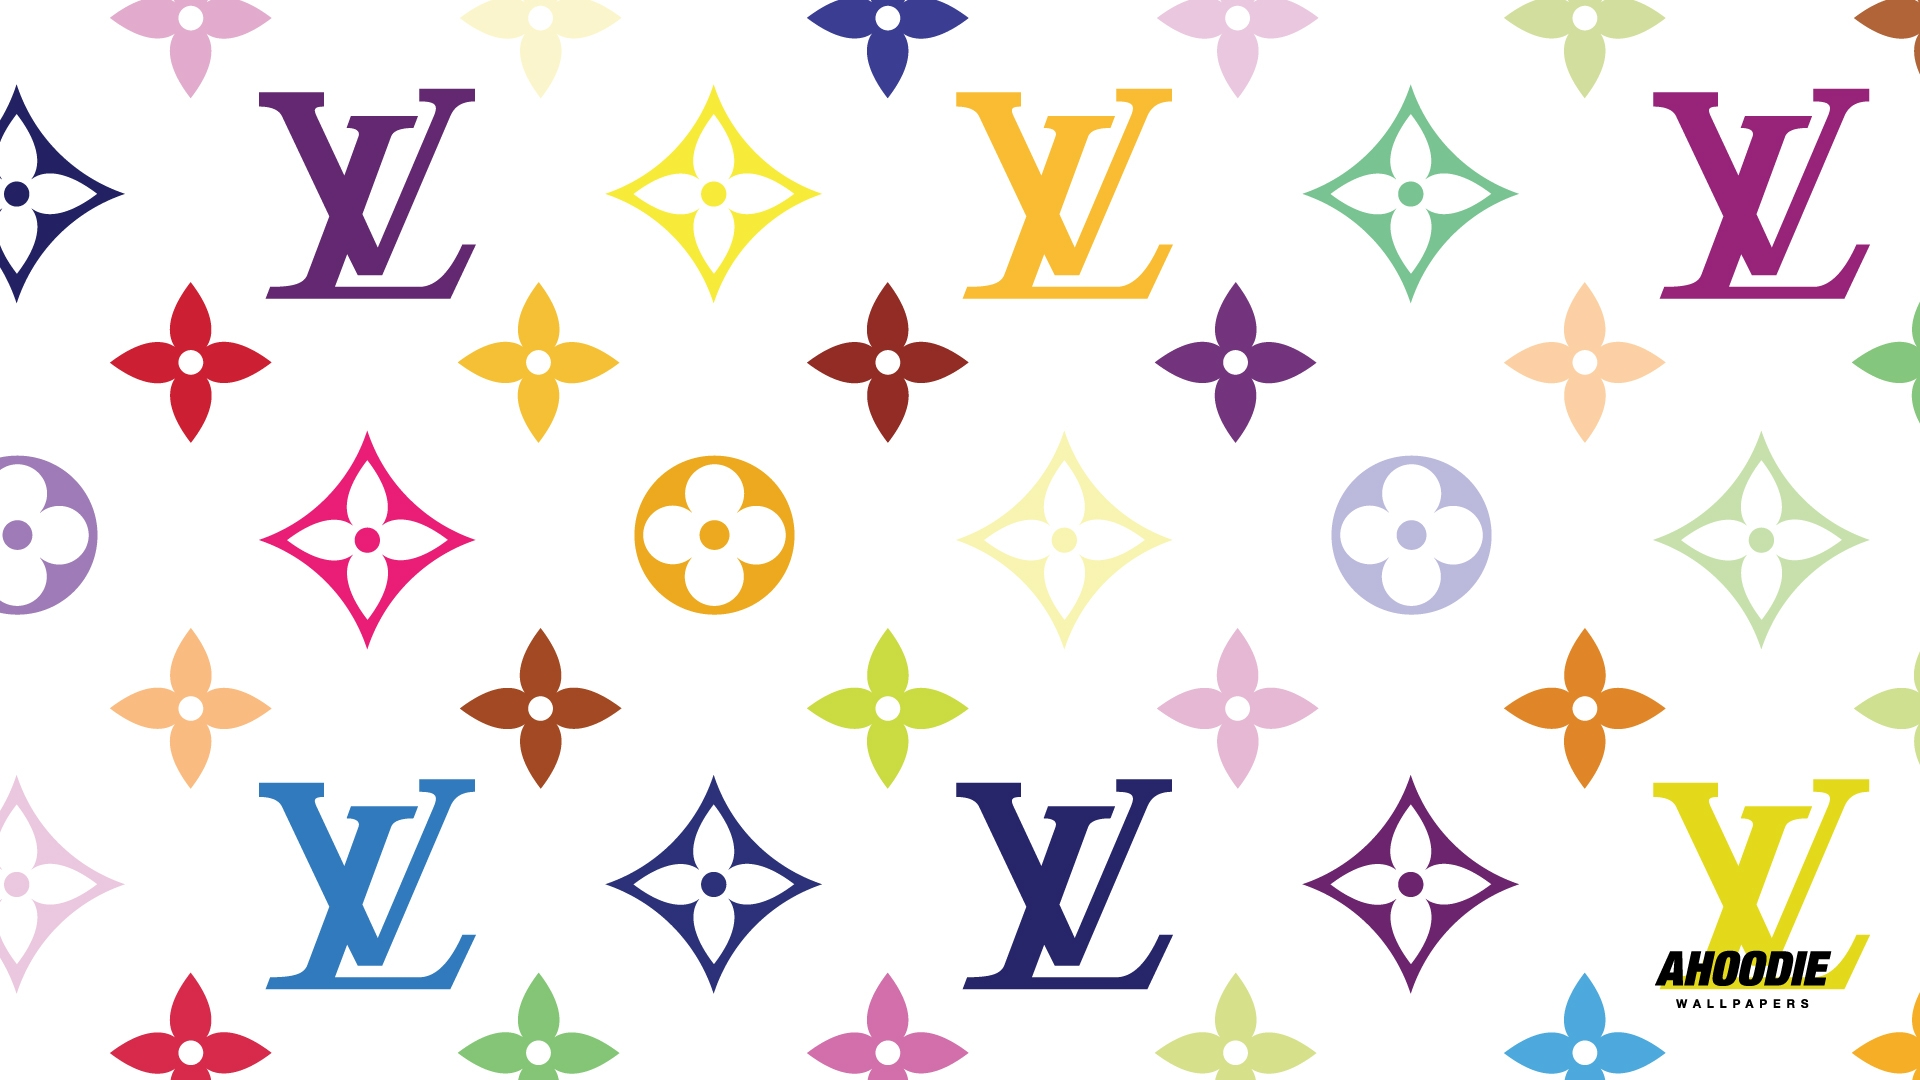 Hd Wallpapers Louis Vuitton Wallpaper Pin Monogram Denim Pinterest 1920x1080